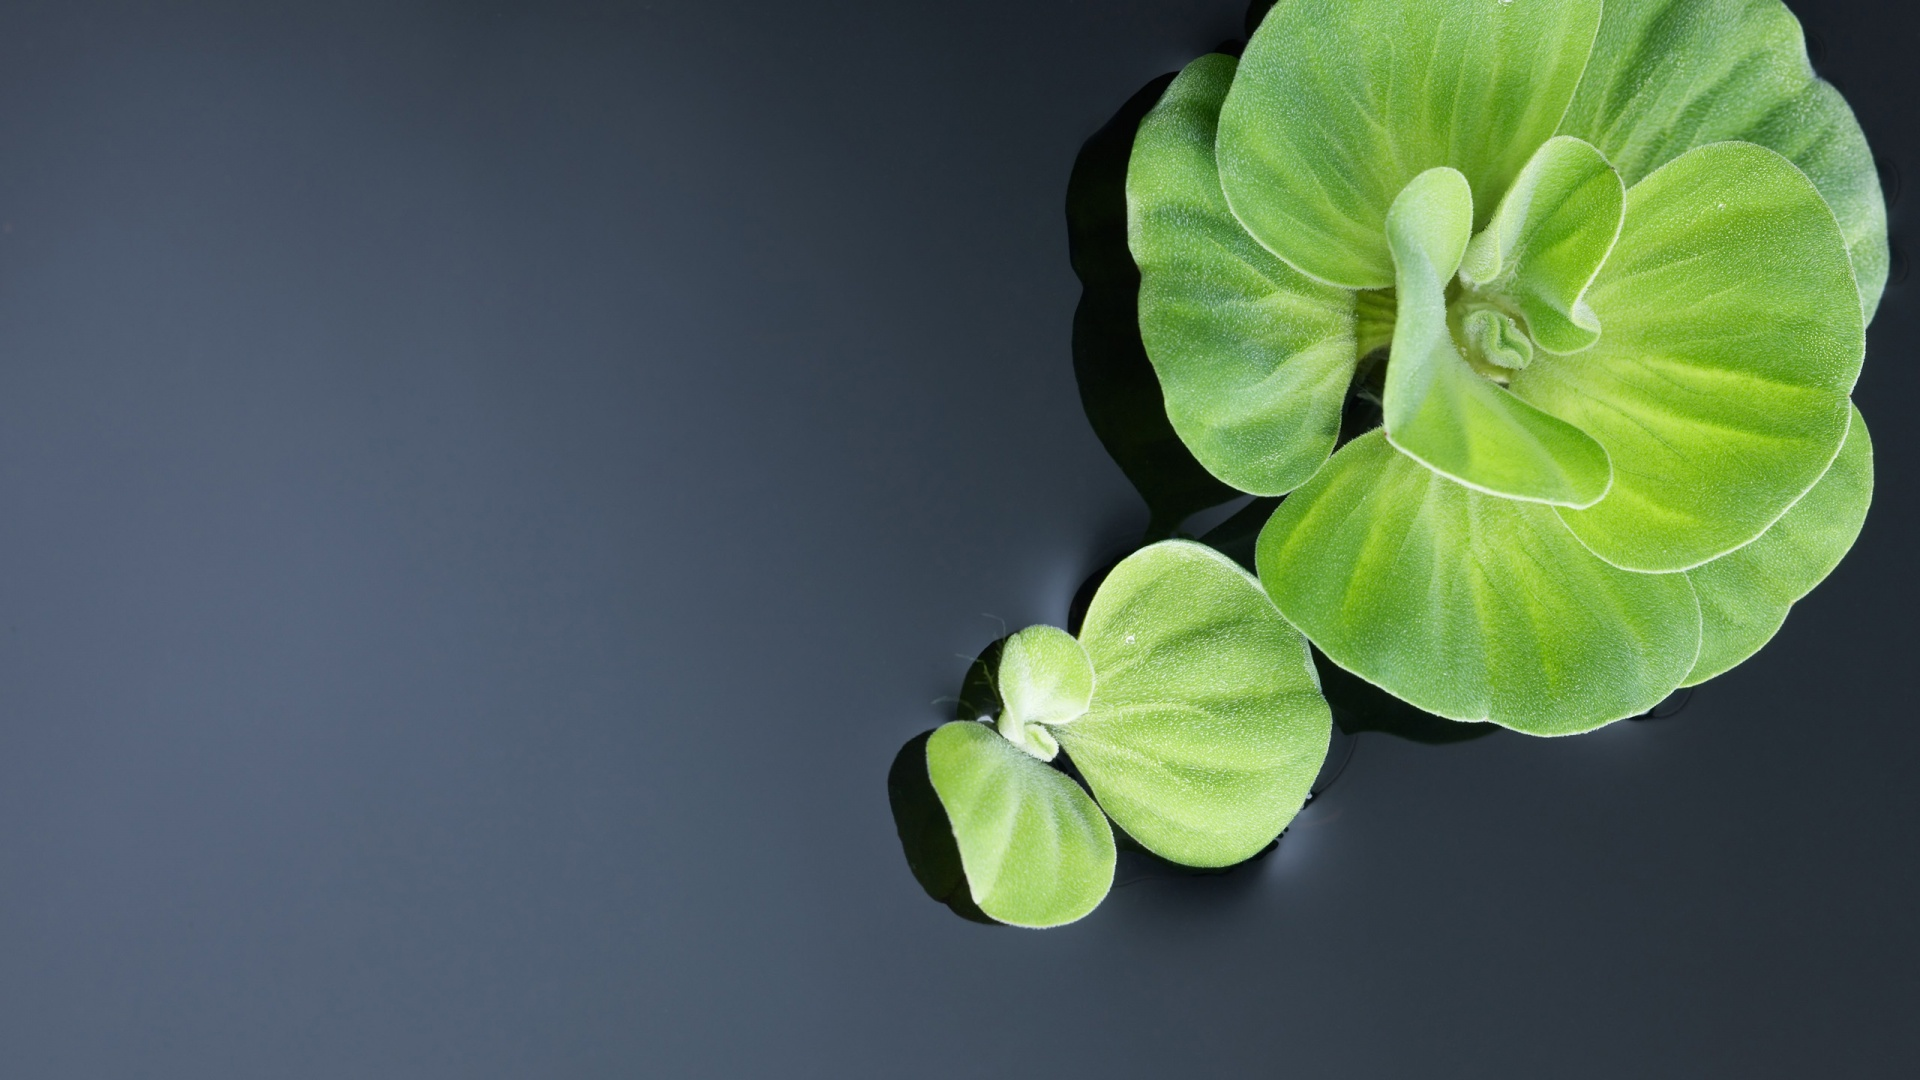 Water Plants – Give Your Home A Fresh Look